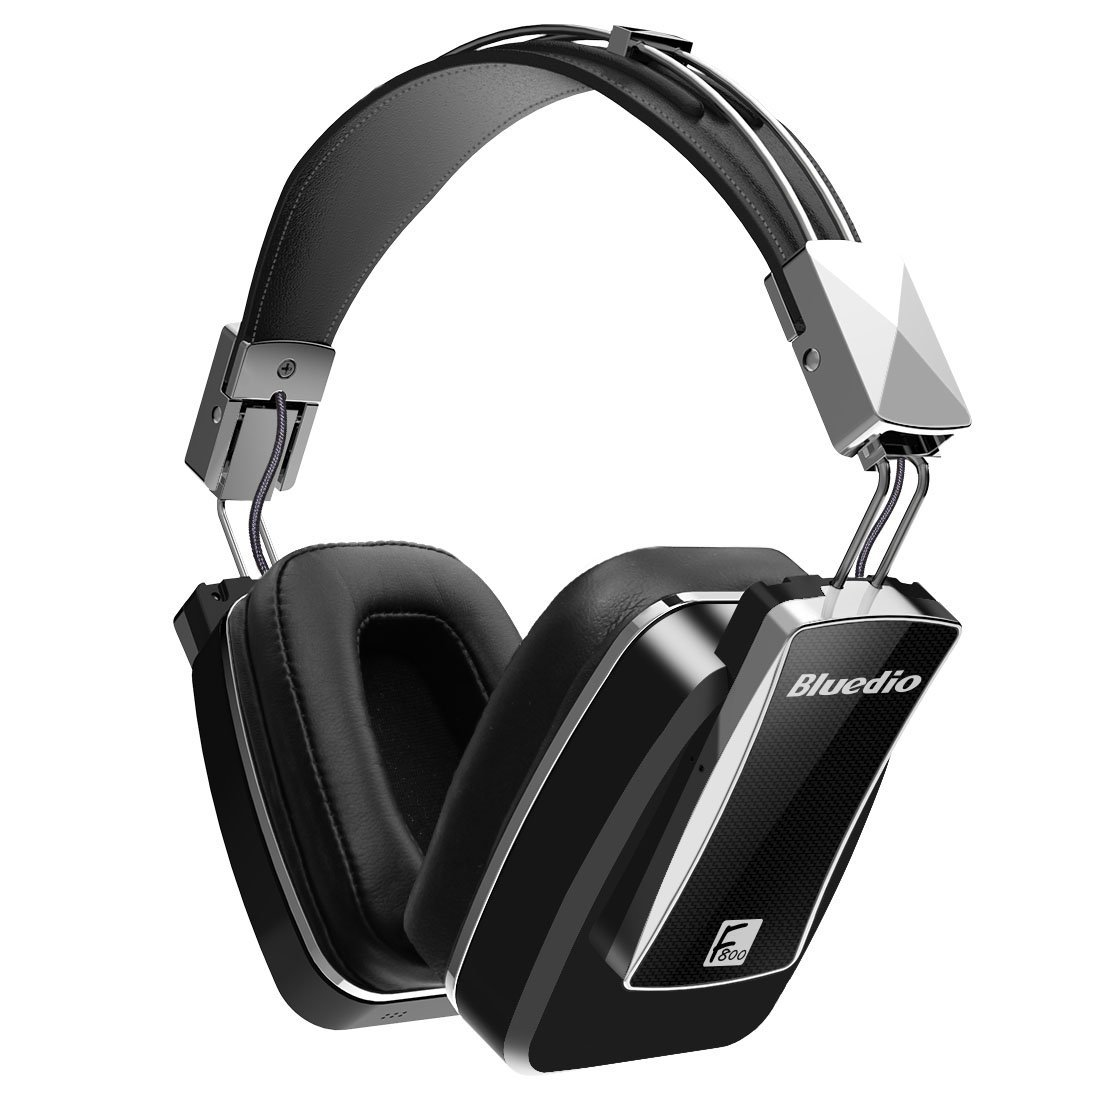 Top Deals Bluedio F800 Active Noise Cancelling Foldable Over-ear Wireless Bluetooth Headphones with Mic(Black) orignal bluedio t2 foldable over the ear bluetooth headphones bt 4 1 fm radio